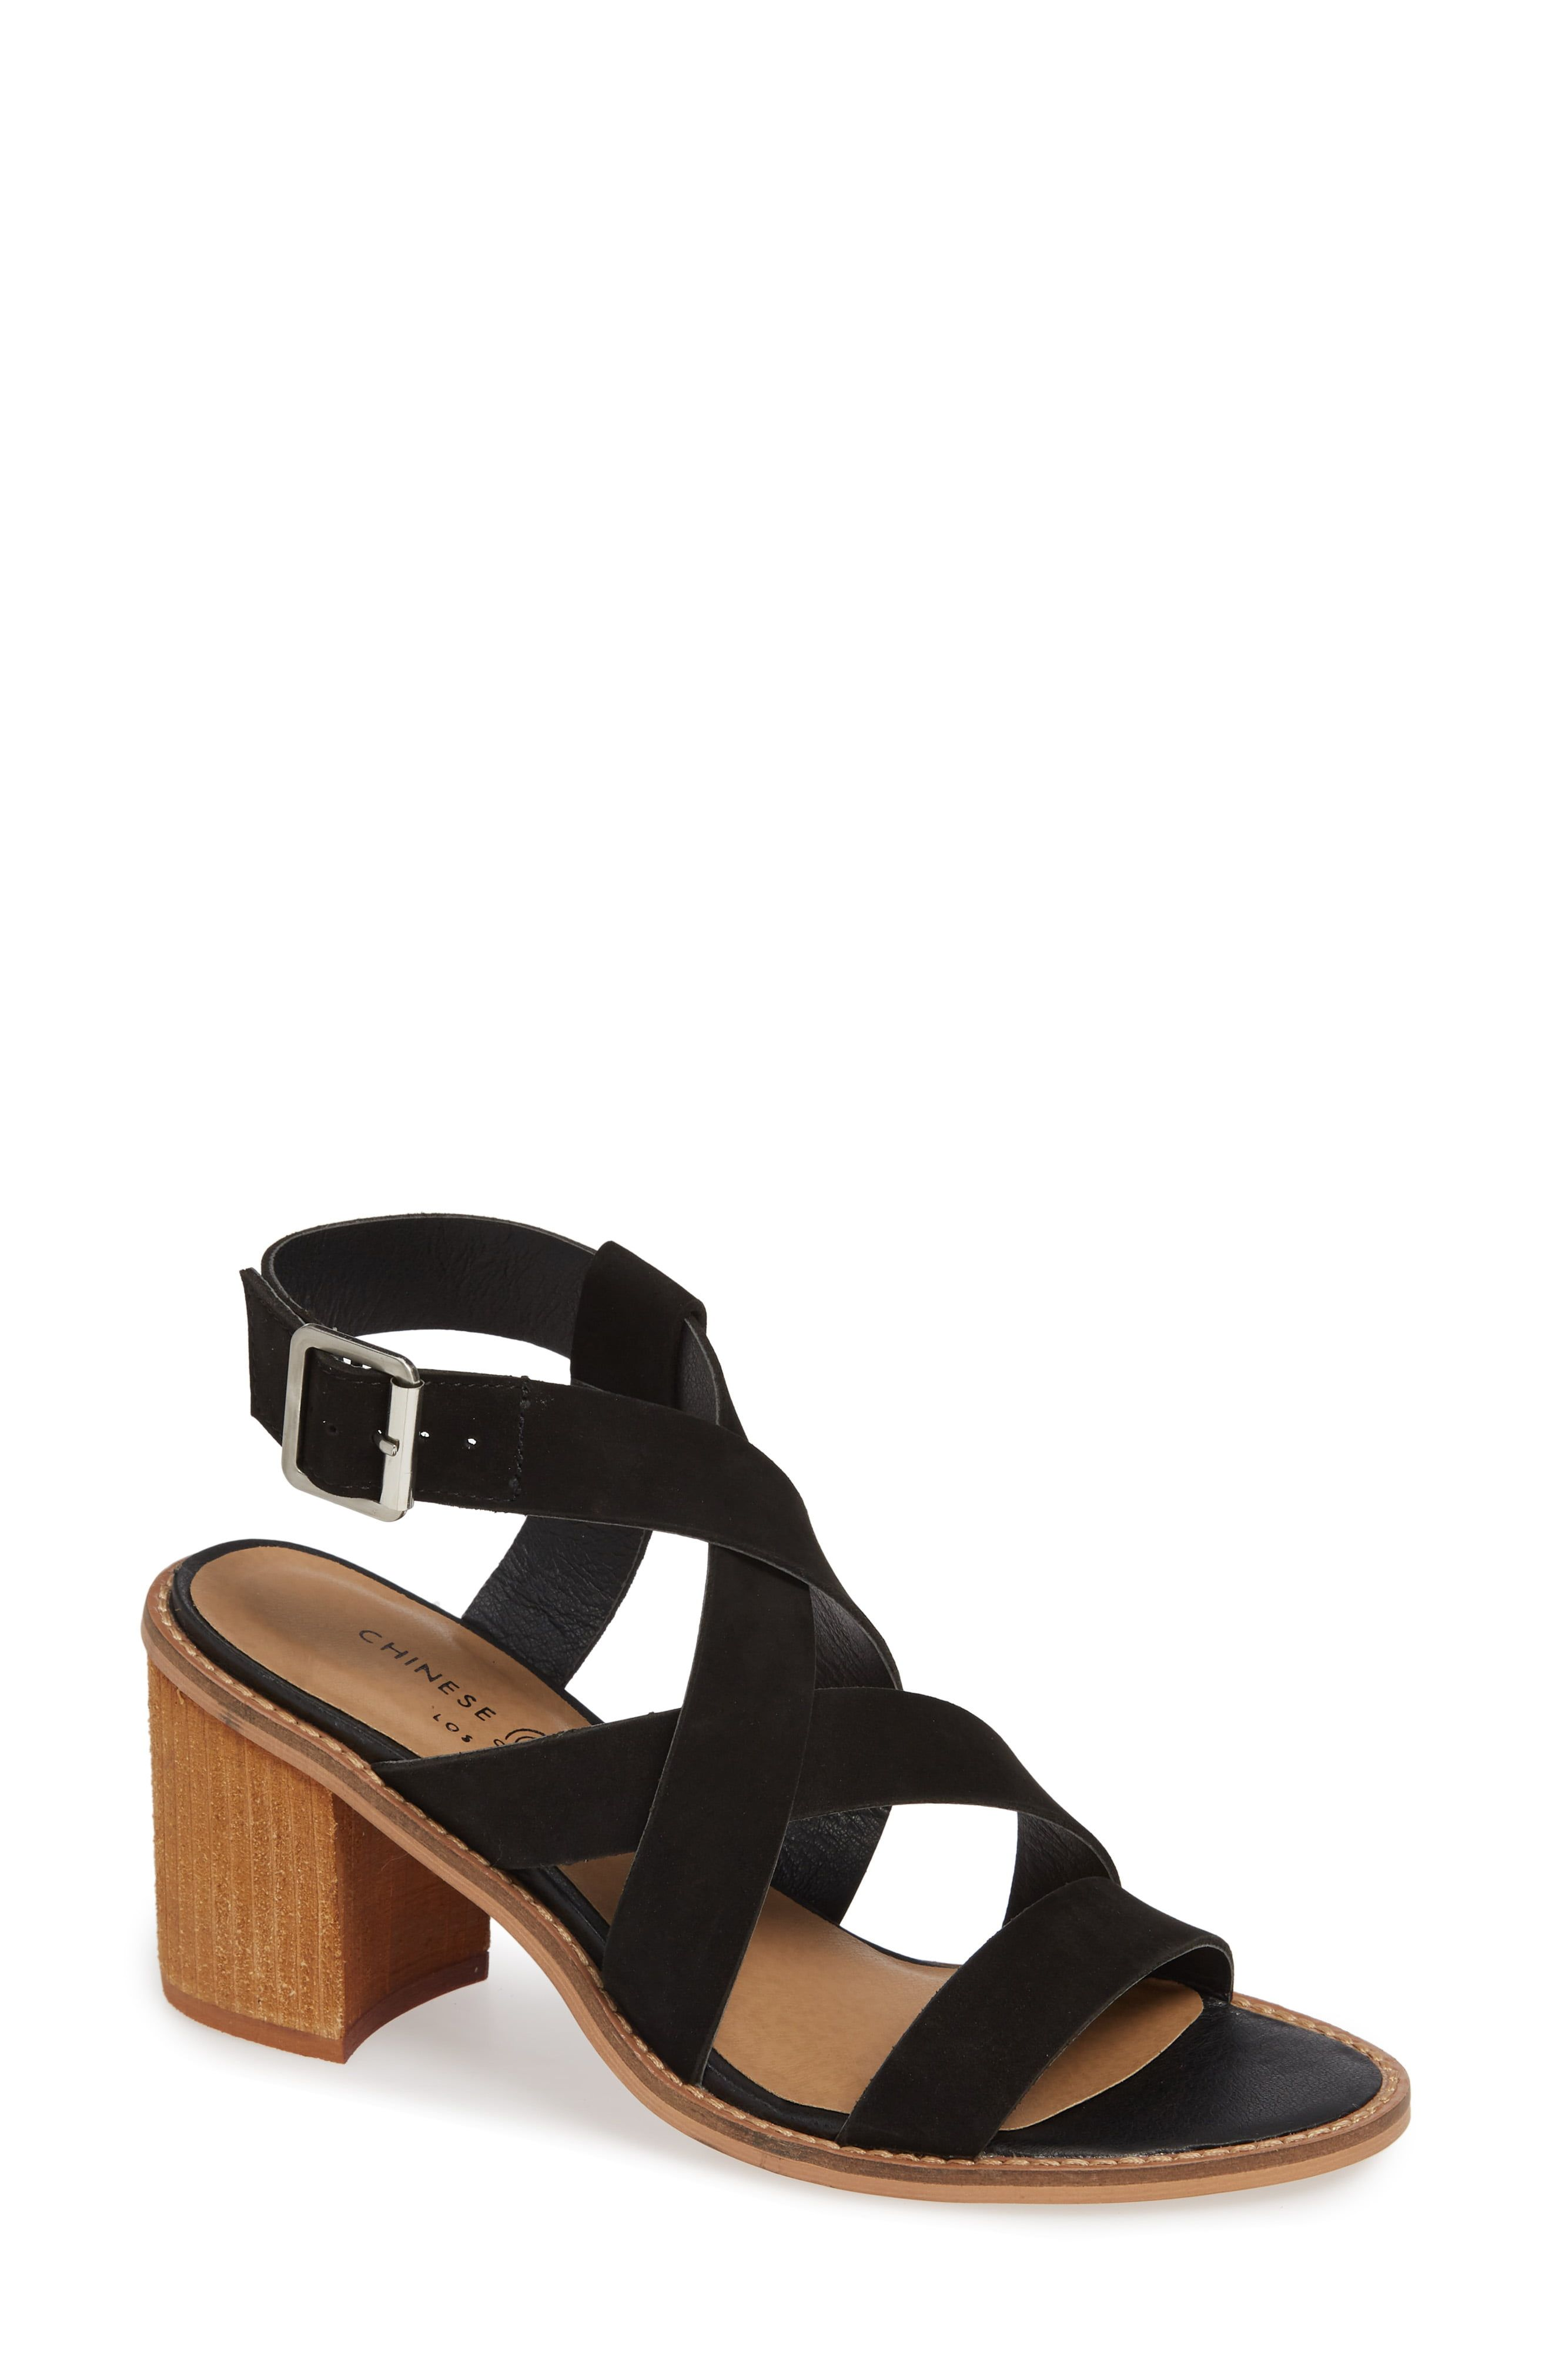 Chinese Laundry Cacey Sandal Women Chinese Laundry Sandals